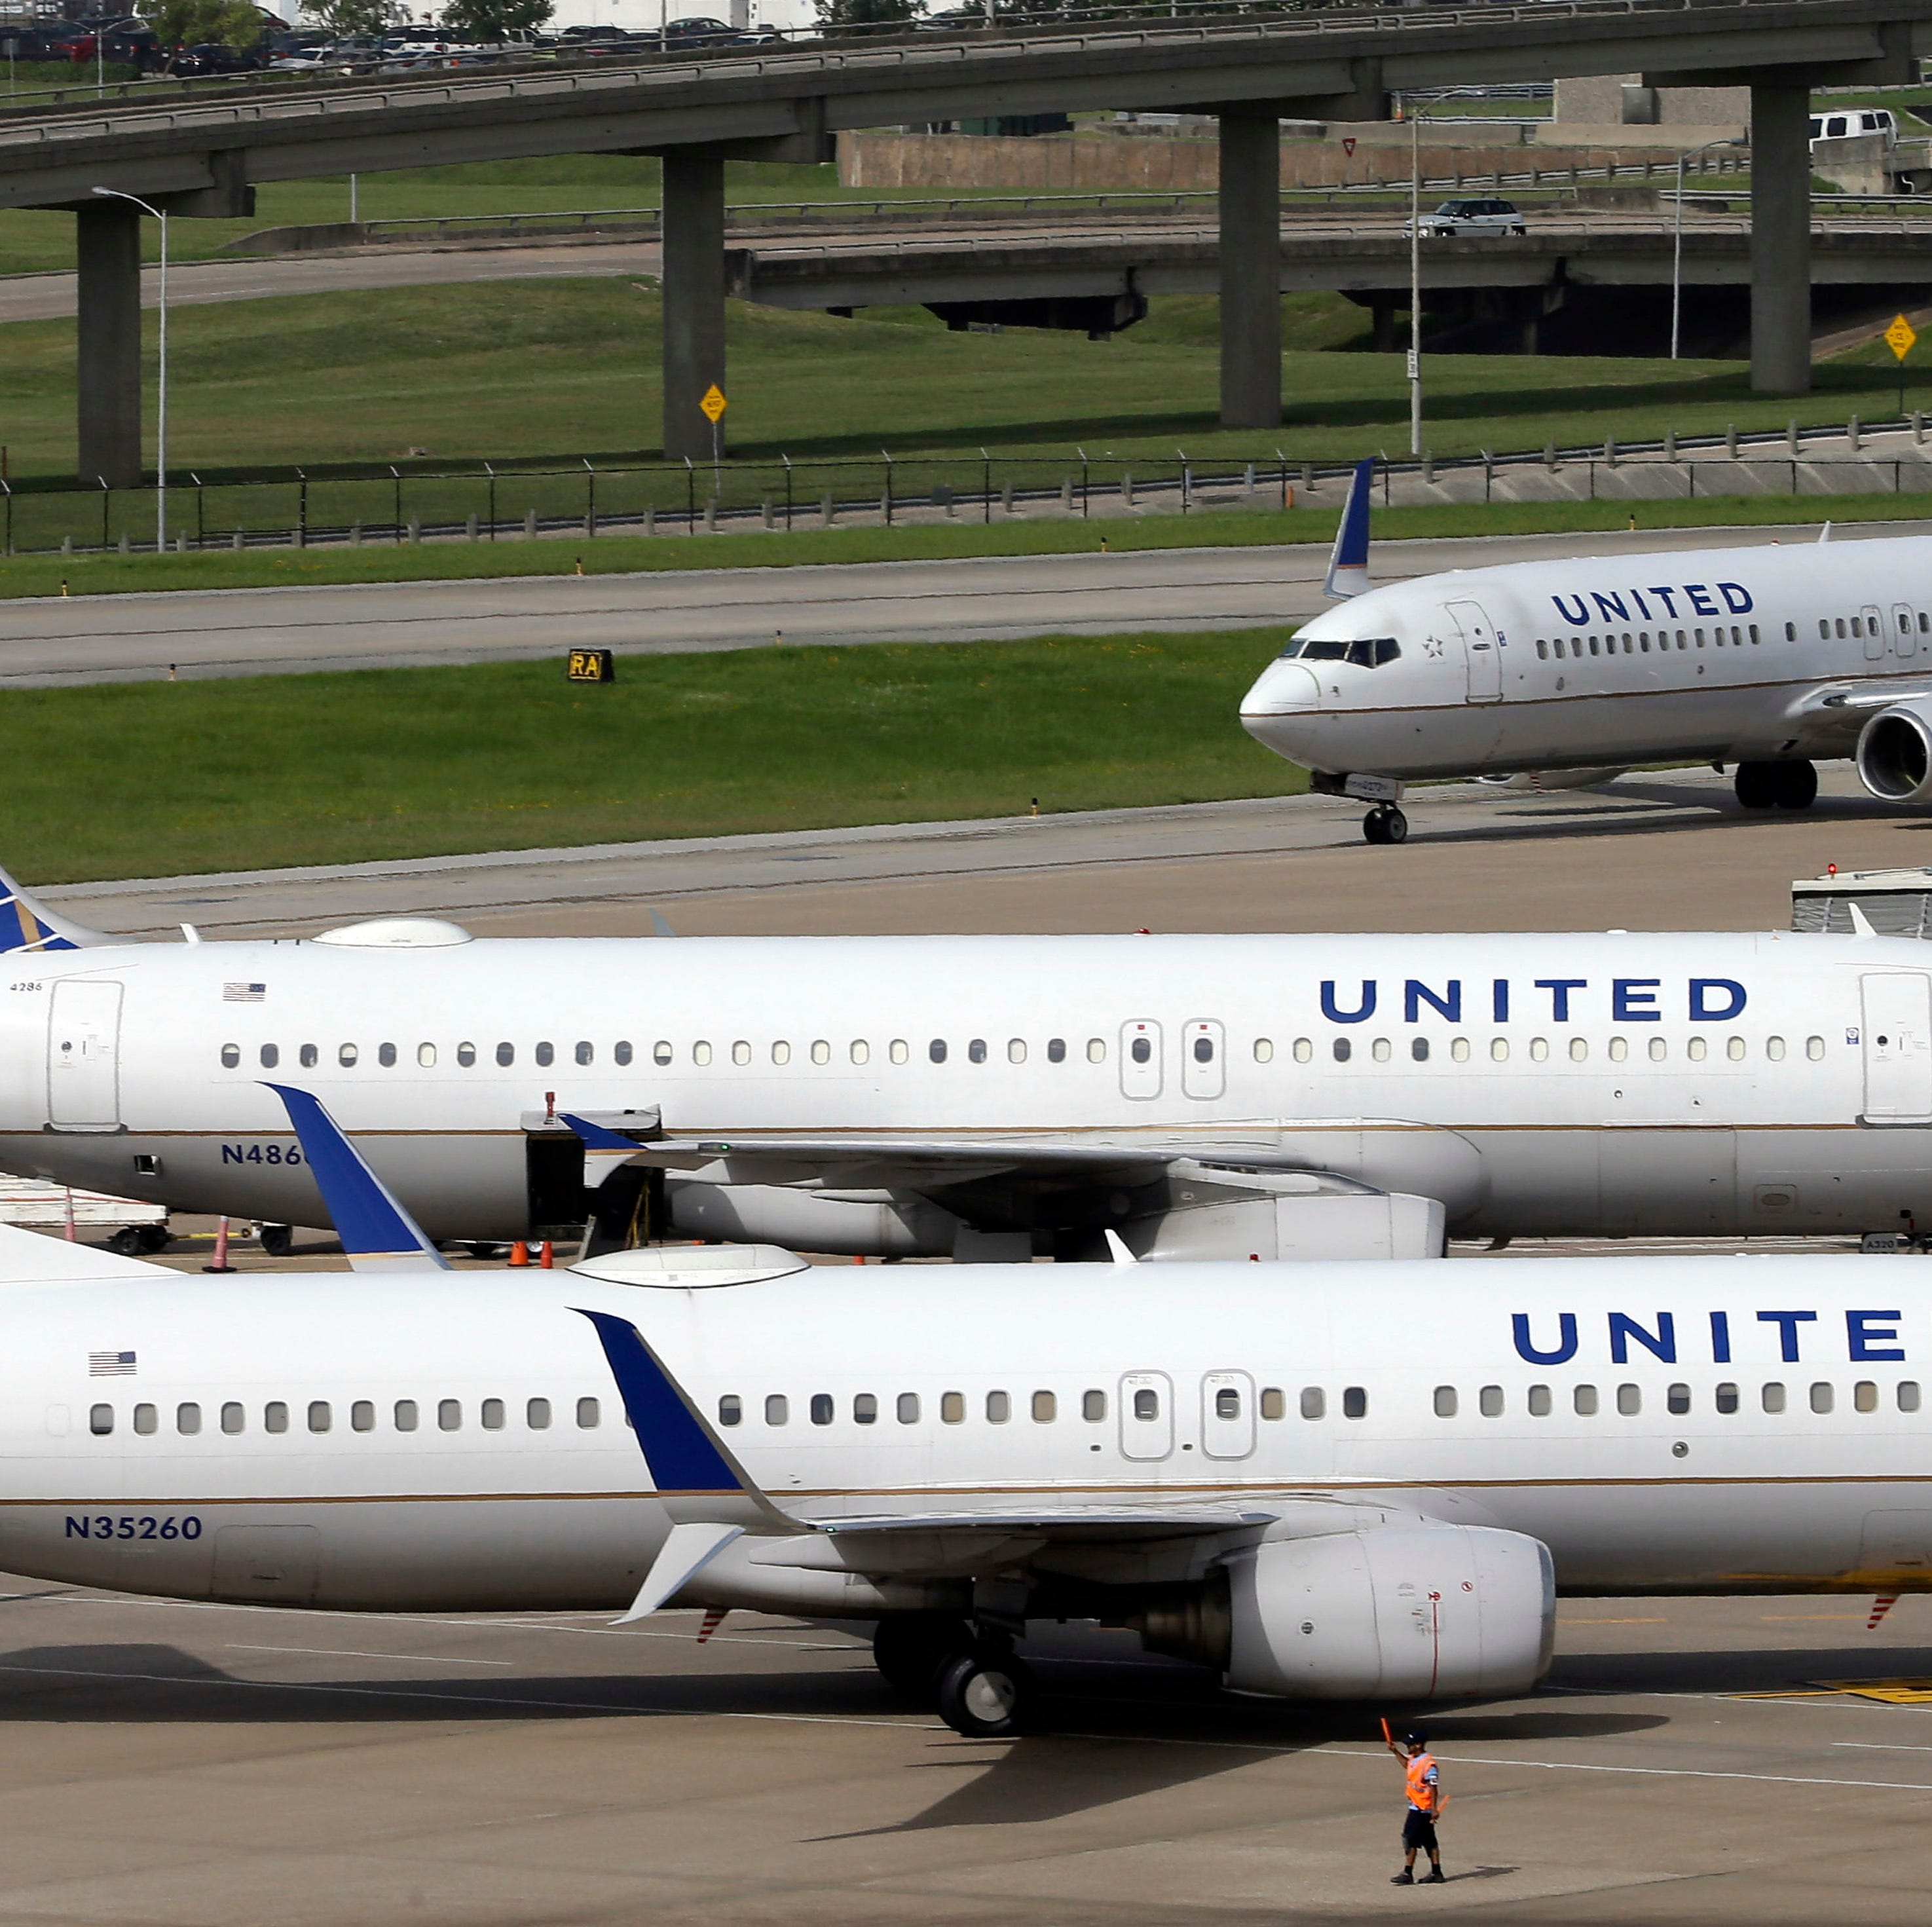 "FILE - In this July 8, 2015, file photo, United Airlines planes are seen on the tarmac at the George Bush Intercontinental Airport in Houston. United Airlines says a disruptive passenger on a flight from Shanghai to New Jersey was asked to get off, resulting in an unscheduled stop in San Francisco and an arrival delayed by eight hours. Videos on social media showed an unidentified elderly man wearing a red ""Make America Great Again"" cap heatedly insisting that he was entitled to a seat and yelling at fellow passengers. (AP Photo/David J. Phillip, File) ORG XMIT: BKWS306"